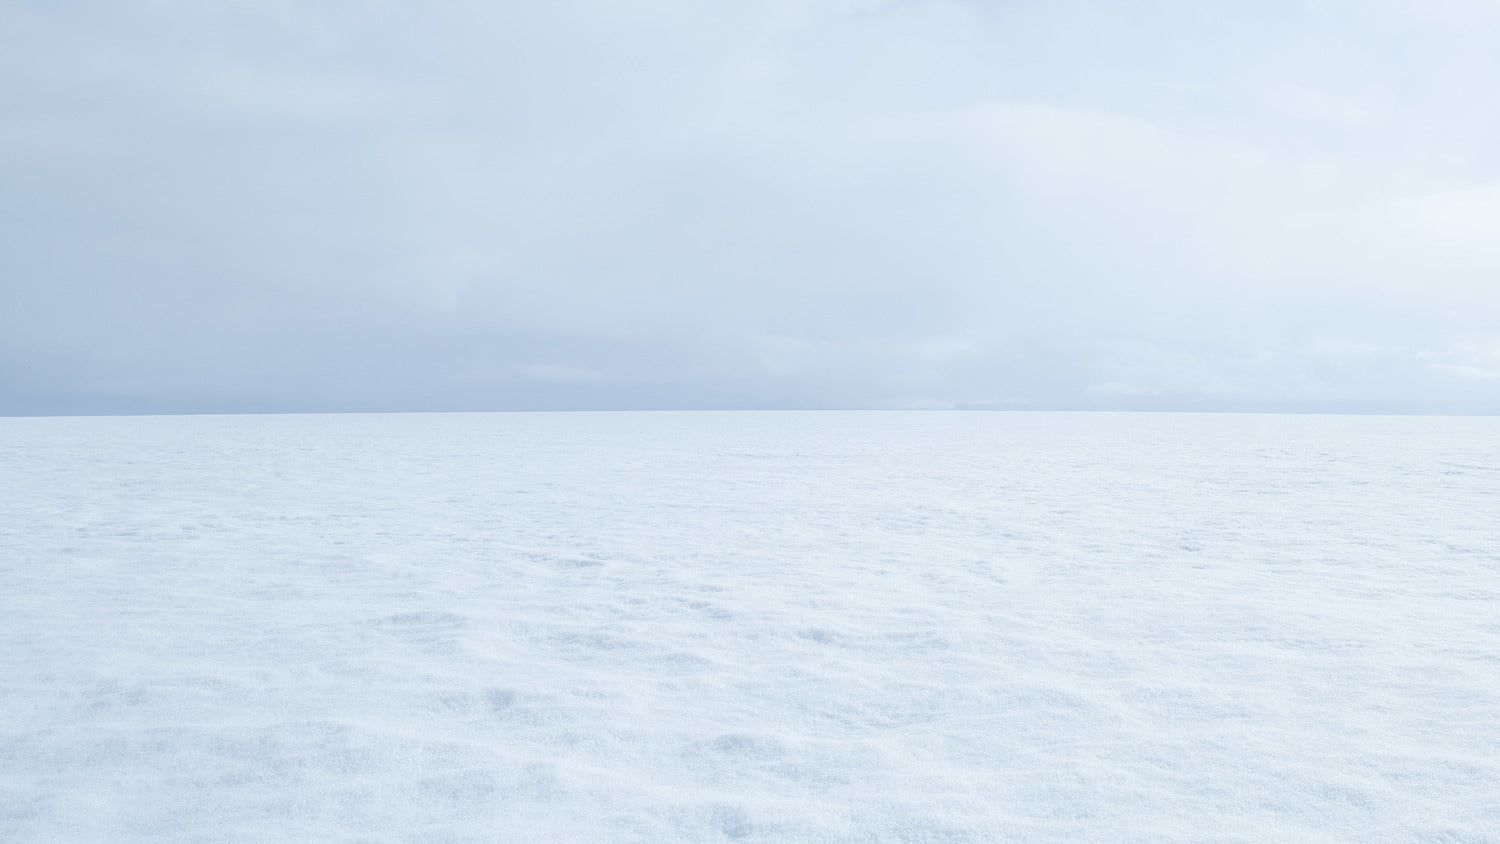 Jin-woo Prensena, 'Purity', Iceland - Provocateur Gallery